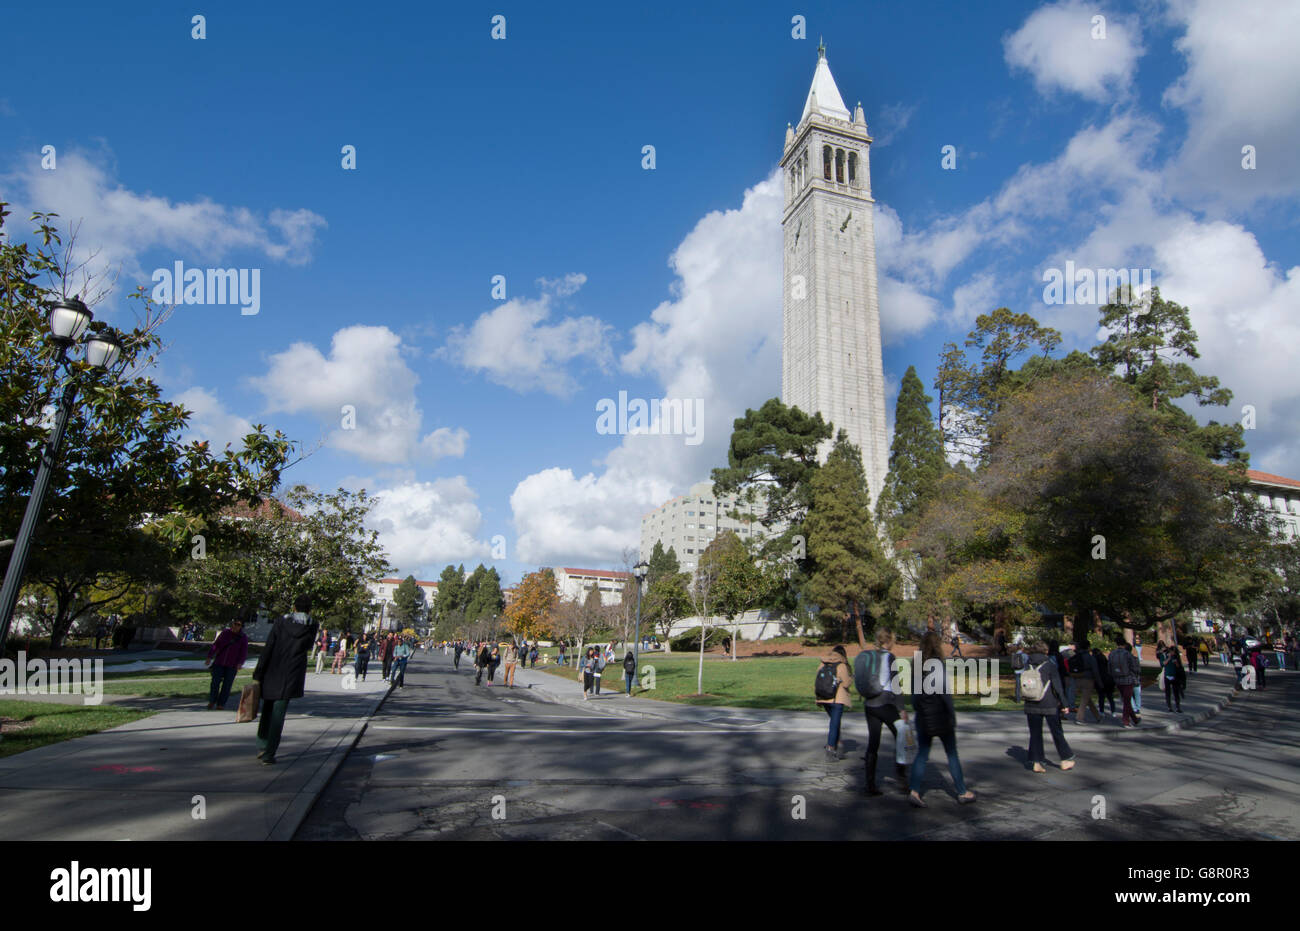 Berkeley California University of California at Berkeley, students with Sather Tower or Campanile tower in background - Stock Image